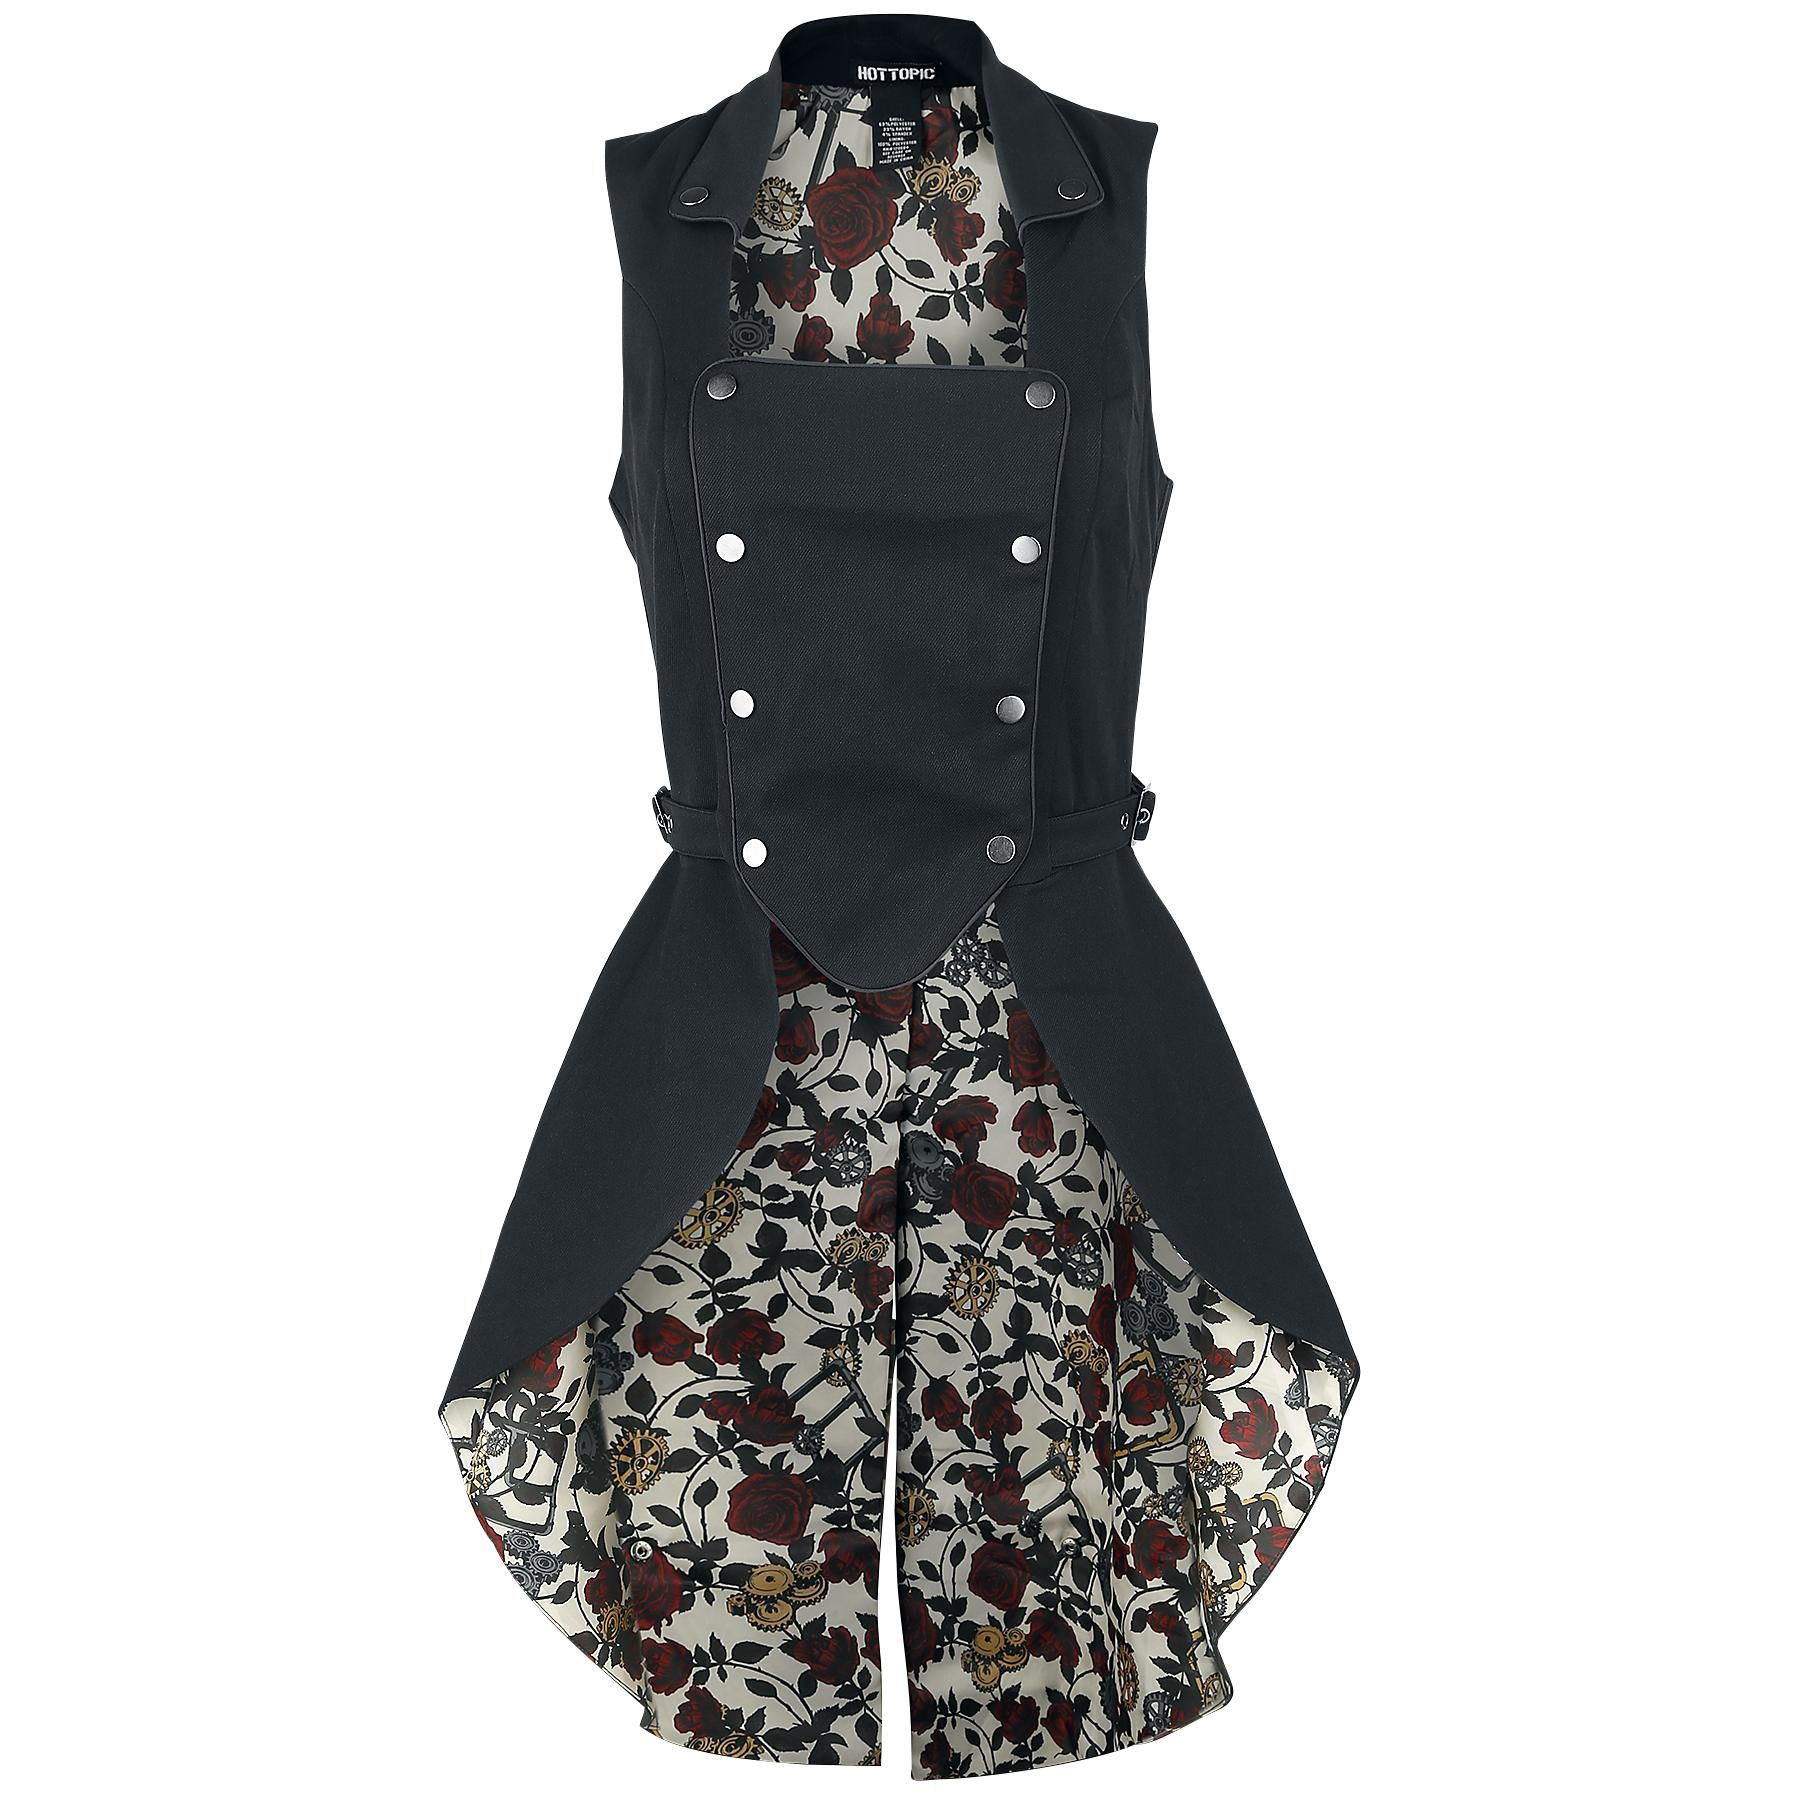 Gear n Roses - Gilet by Hot Topic